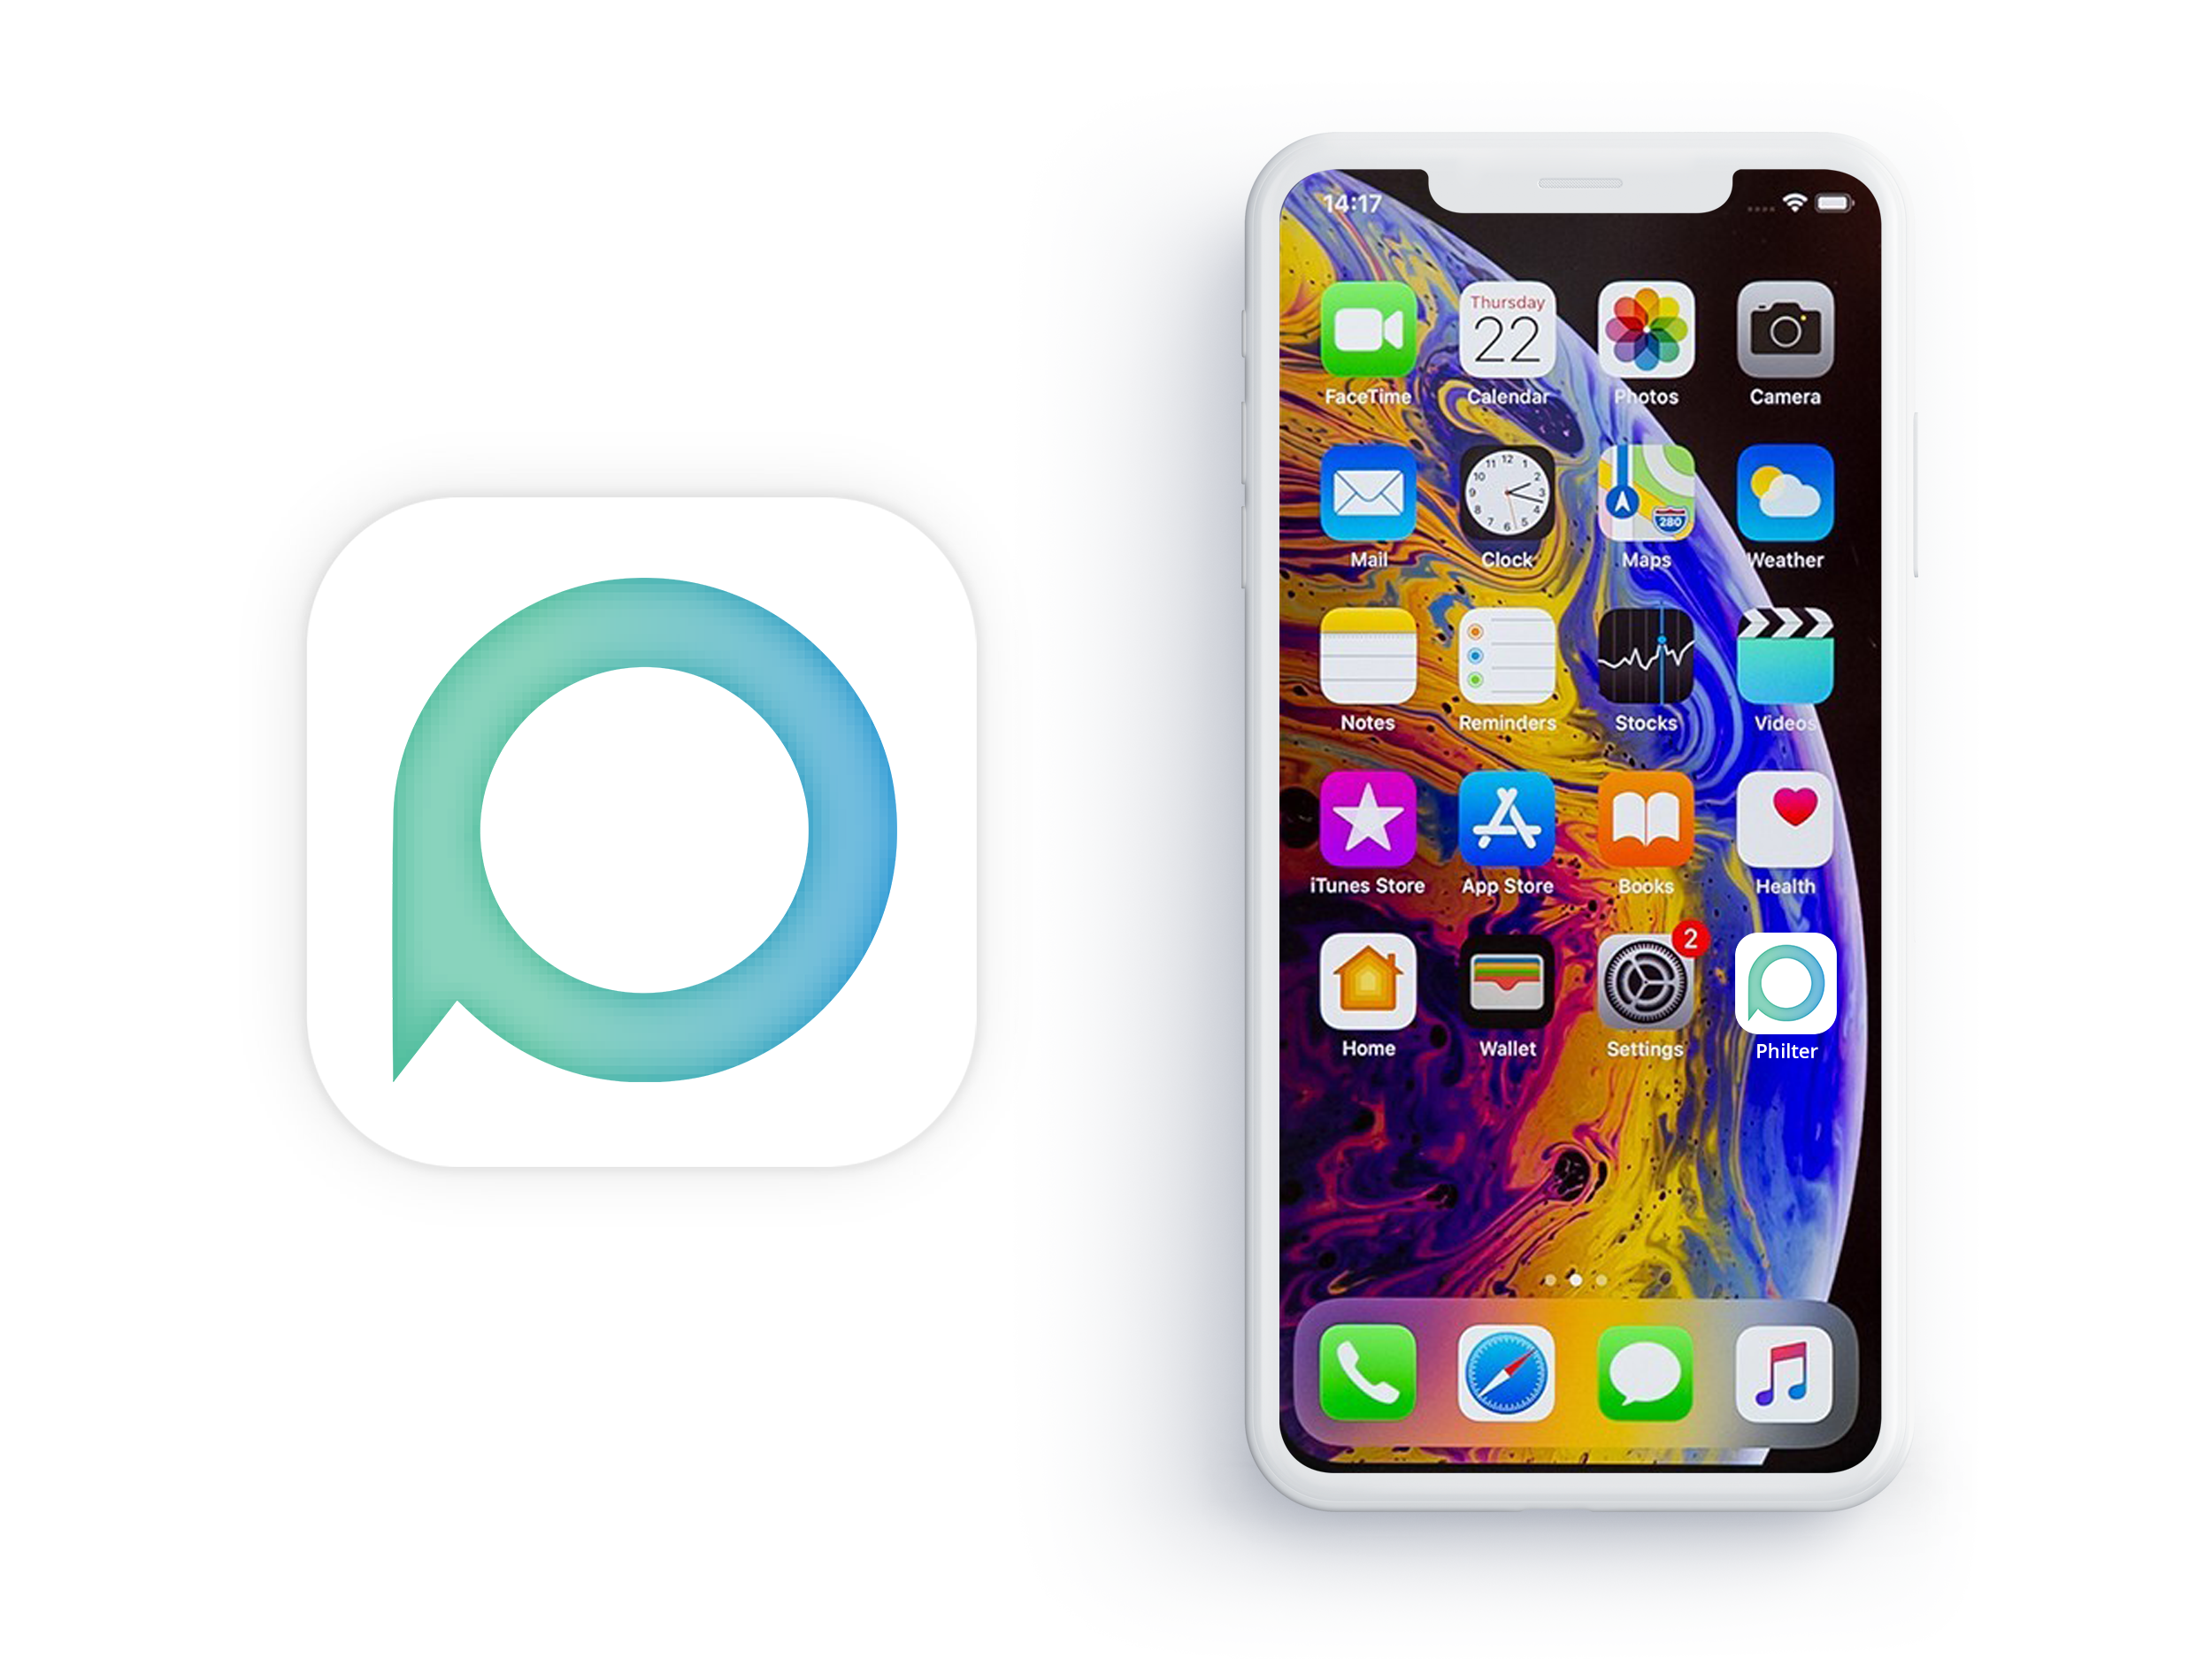 Philter+Mobile+App+Interface+Design_App+Icon_Mockup.png